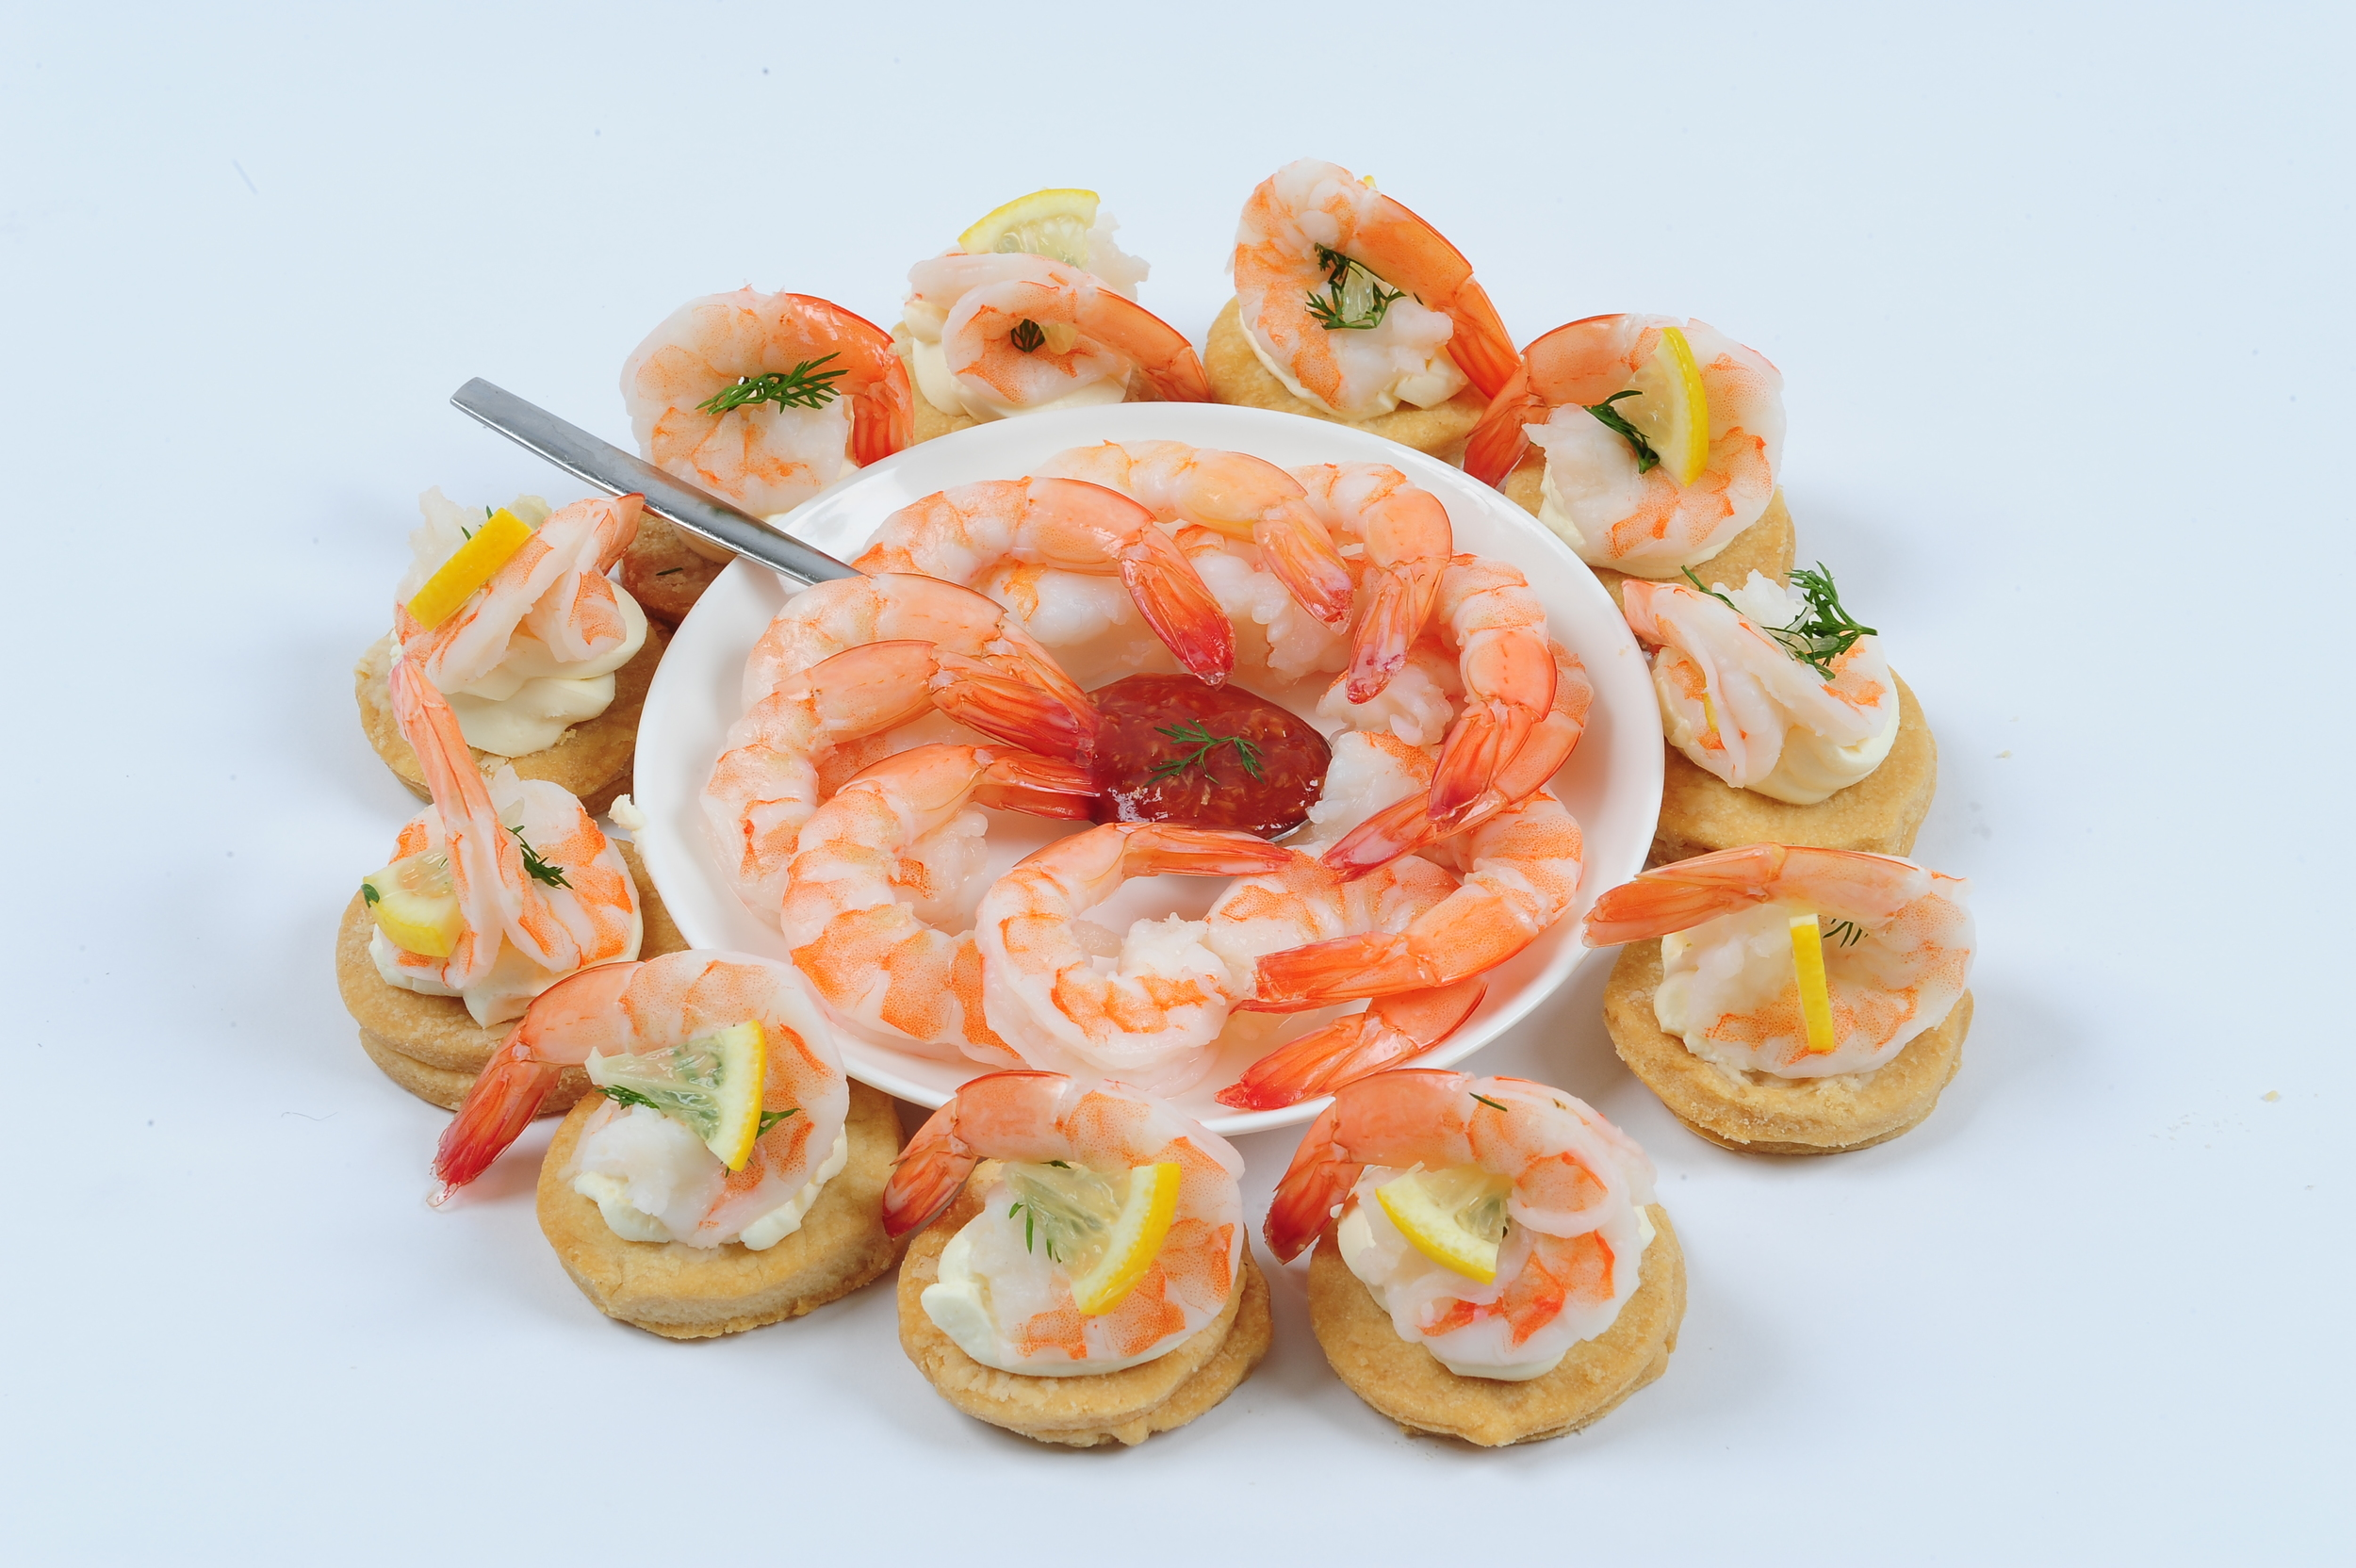 Classic Shrimp Cocktail on soft butter biscuits